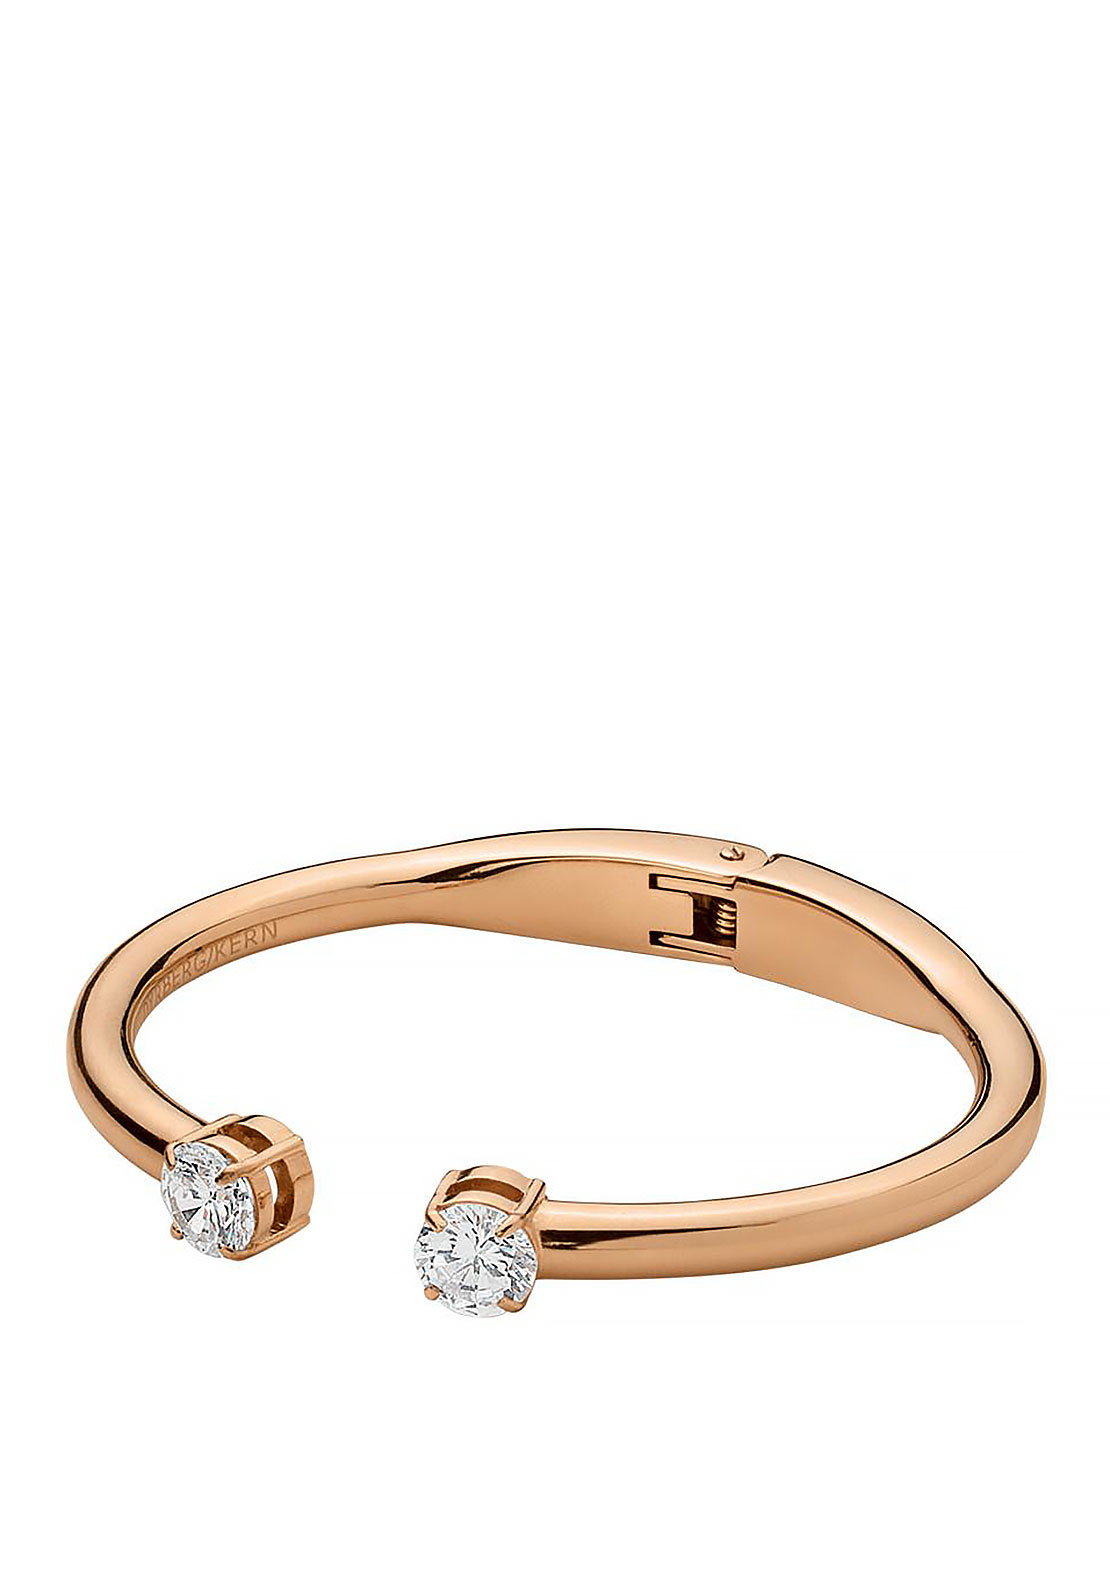 Dyrberg Kern Radia Bangle, Rose Gold